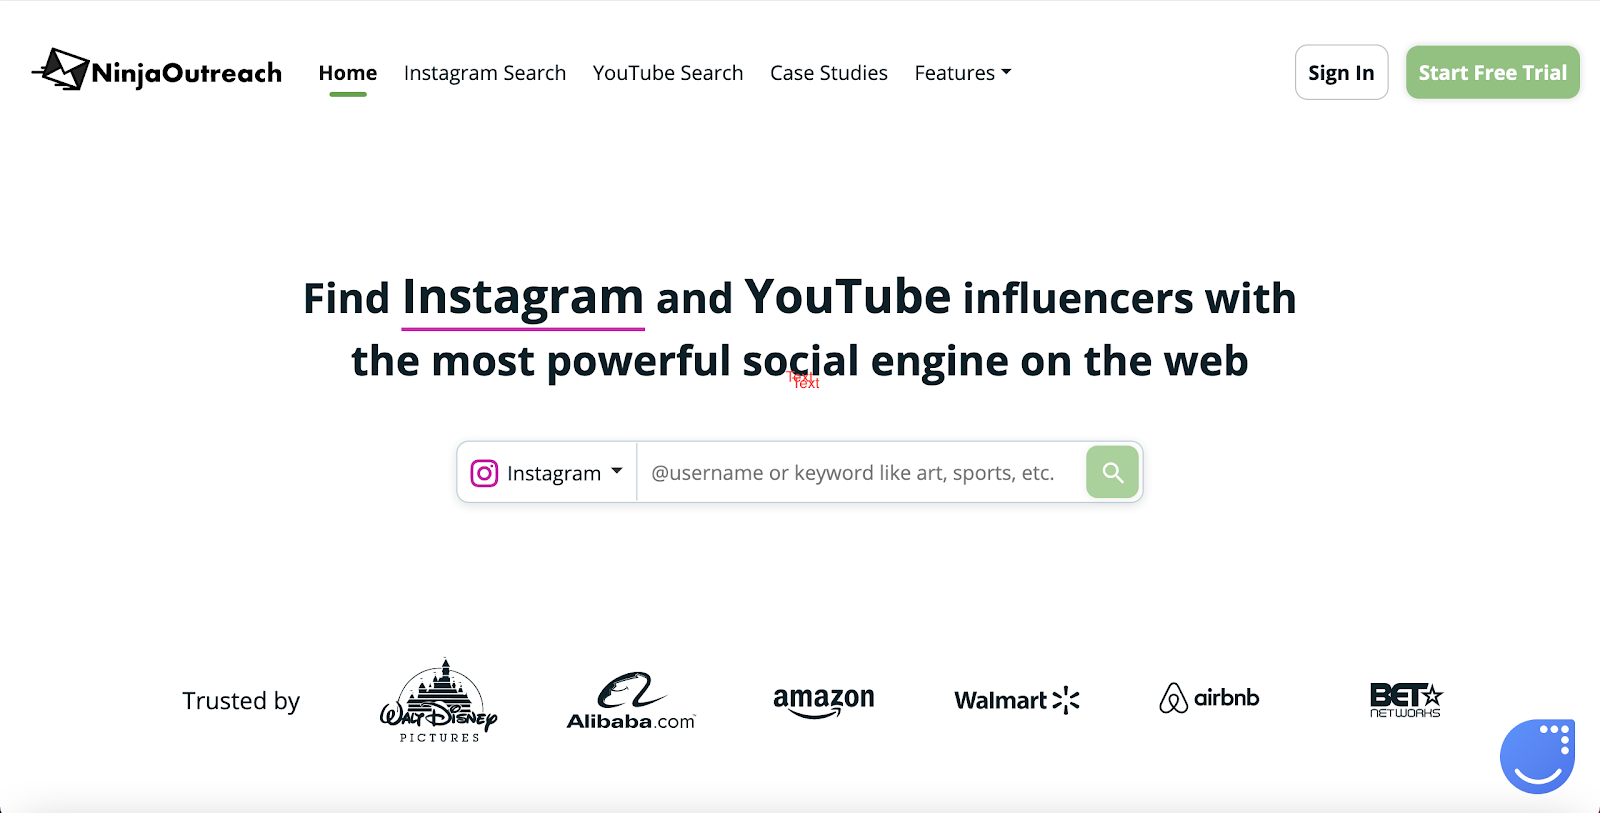 Ninja Outreach is a Platform that helps you connect with influencers